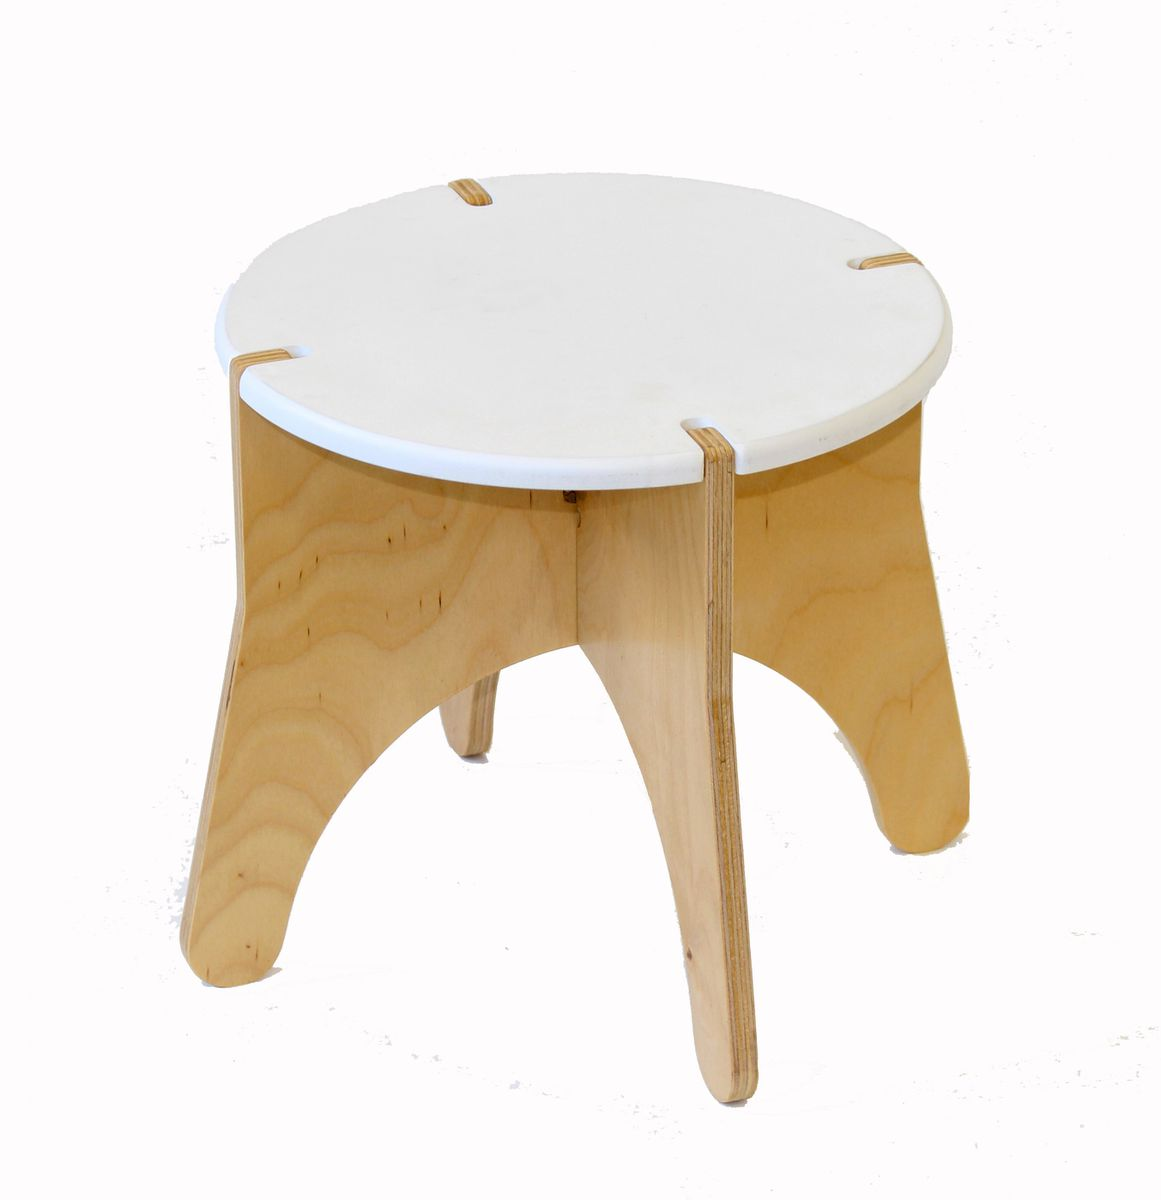 chair covers pretoria swivel office without wheels bootoo toddler stool with white seat and natural wood birch